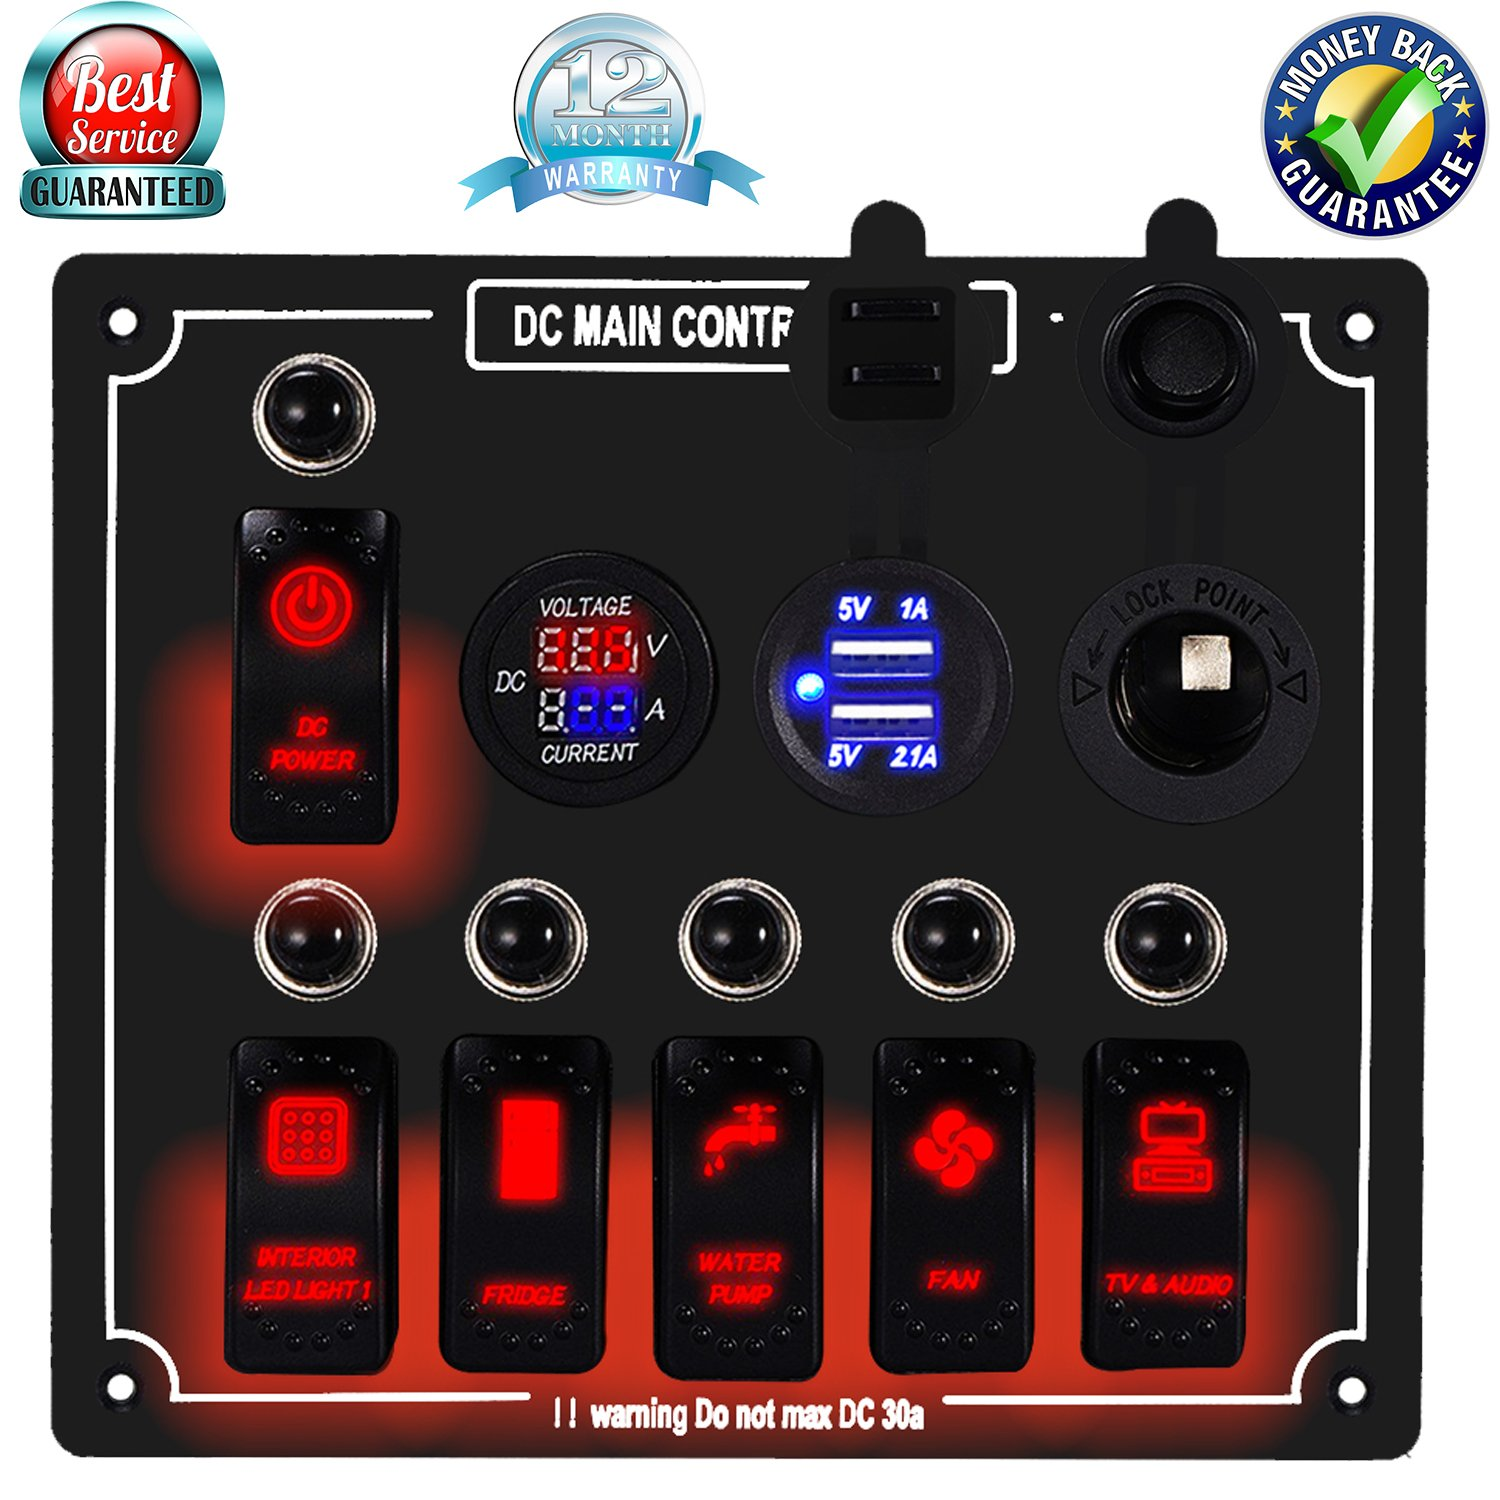 DCFlat 4/6/8/10 Gang Circuit LED Car Marine Waterproof 5 Pin Boat Rocker Switch Panel with Fuse Dual USB Slot LED Light + Power Socket Breaker Voltmeter for RV Car Boat (6 Gang Overload Protection-) by DCFlat